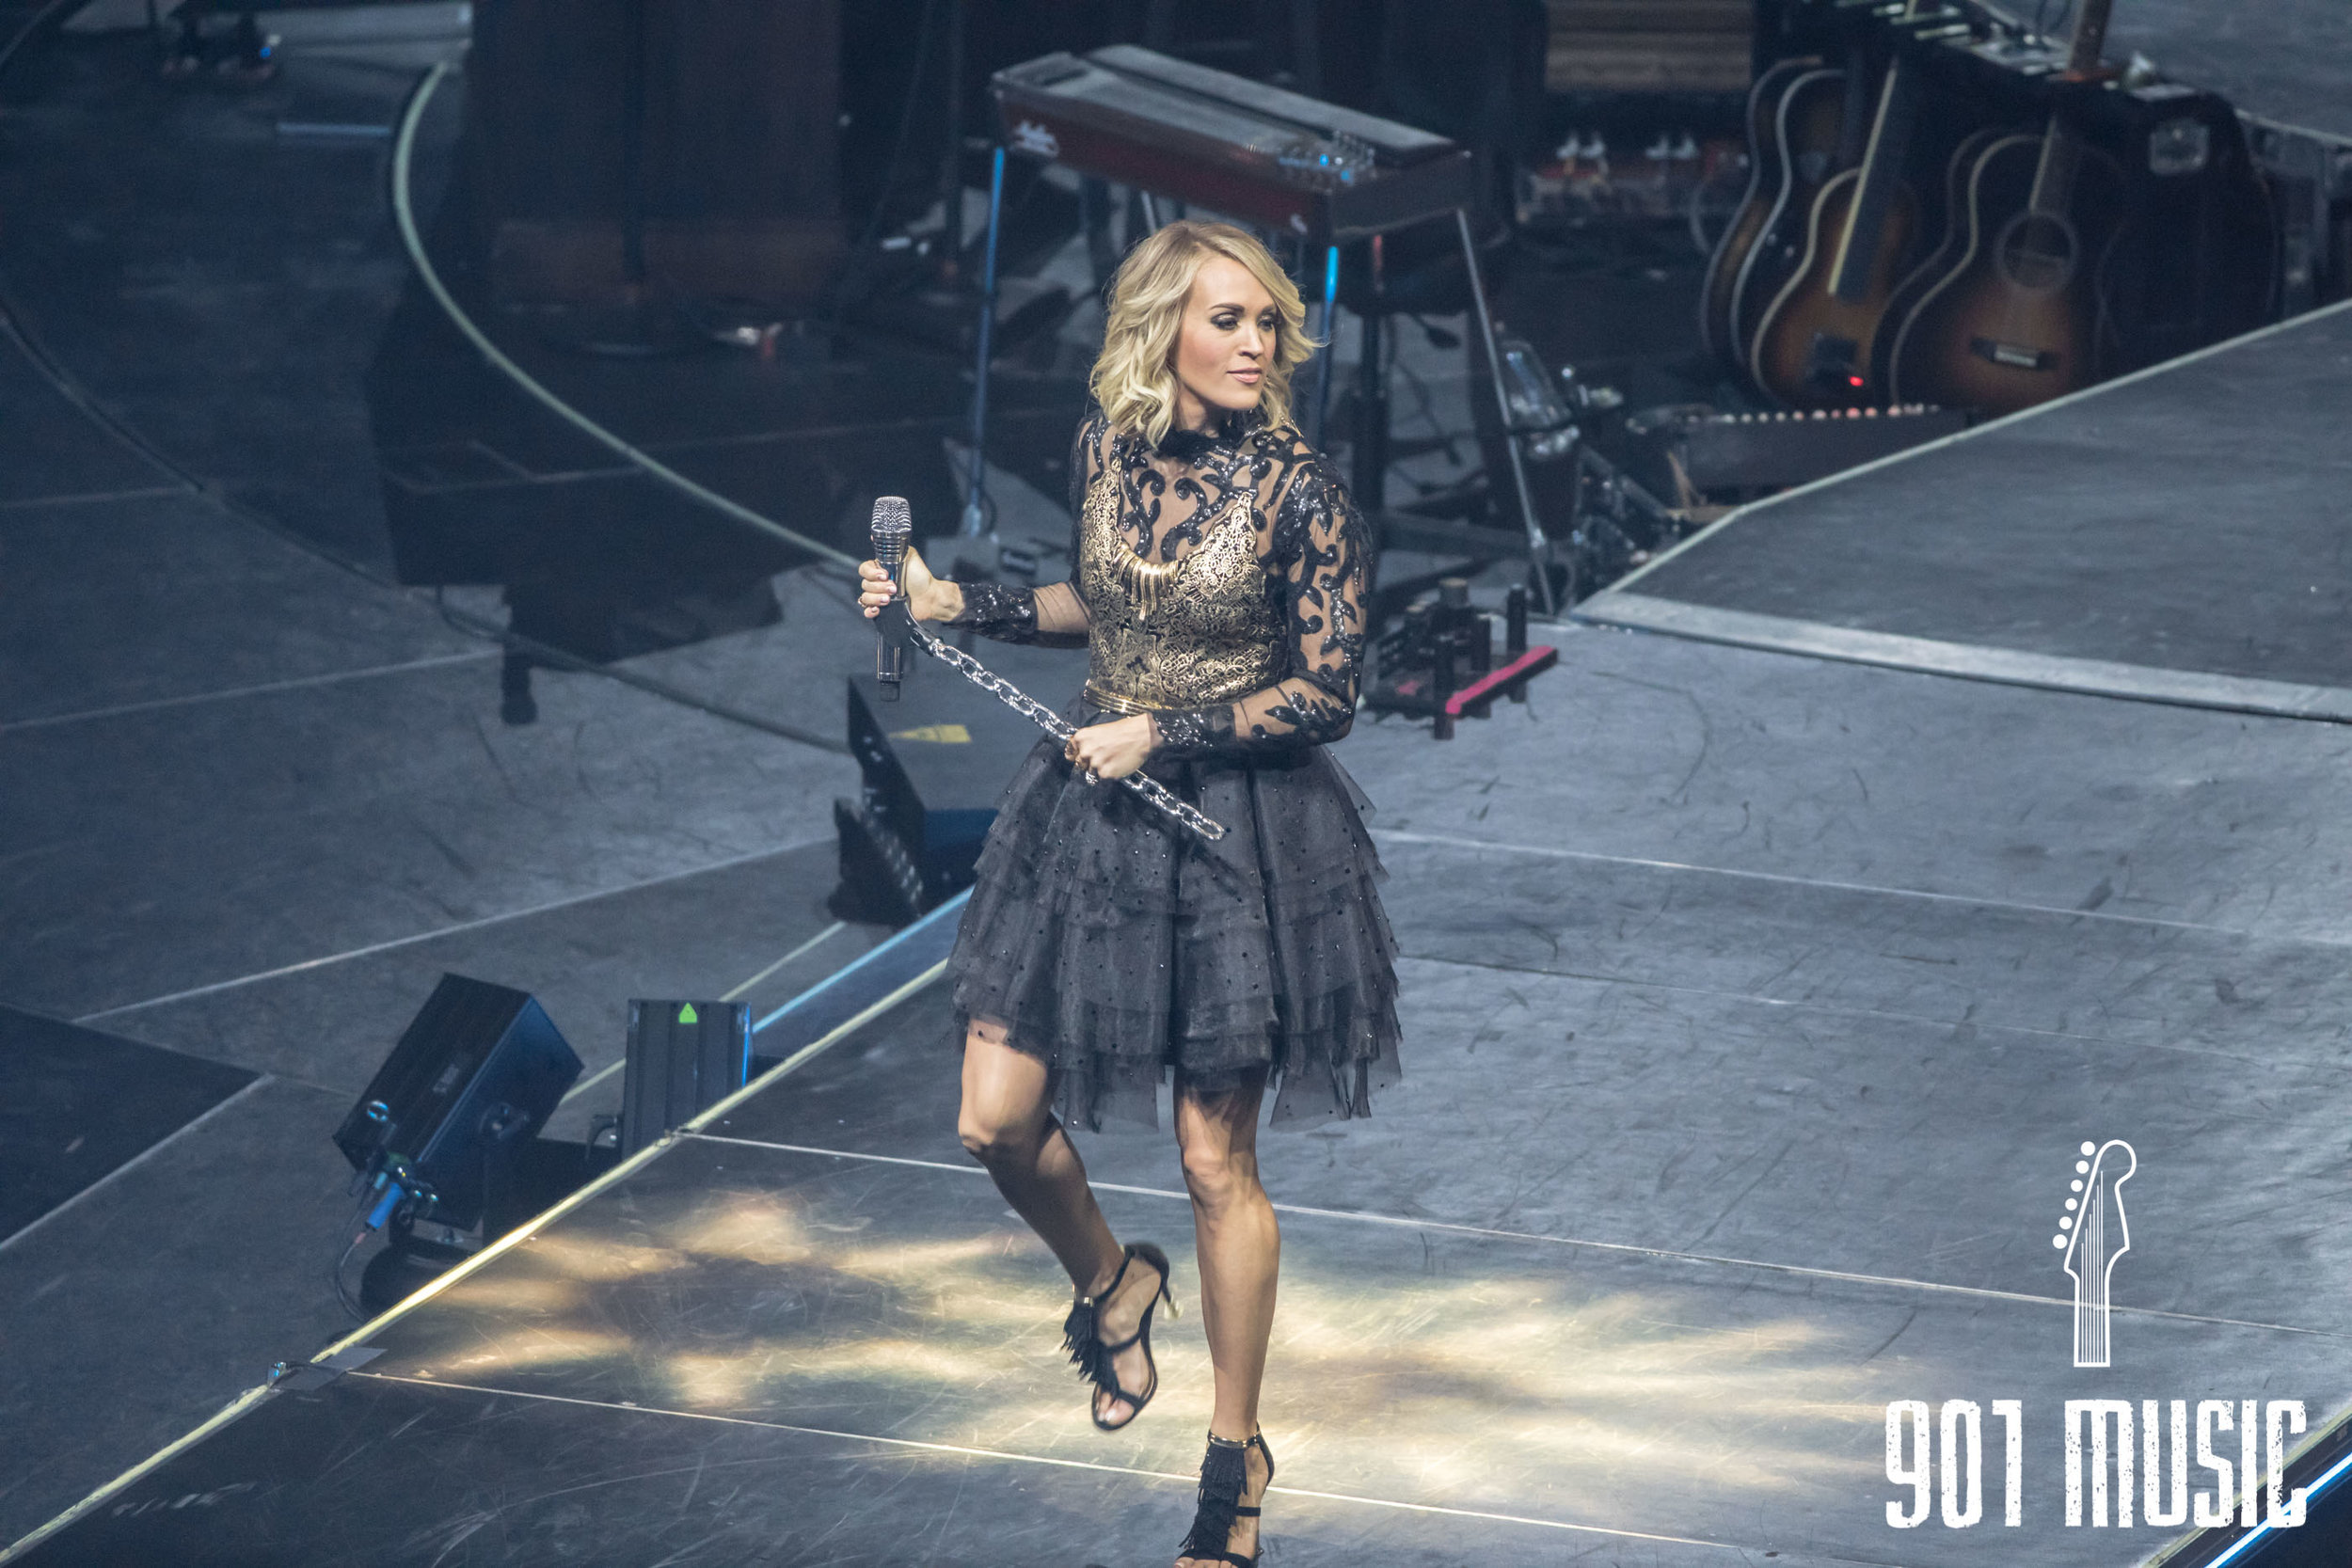 na11132016-Carrie Underwood-34.jpg